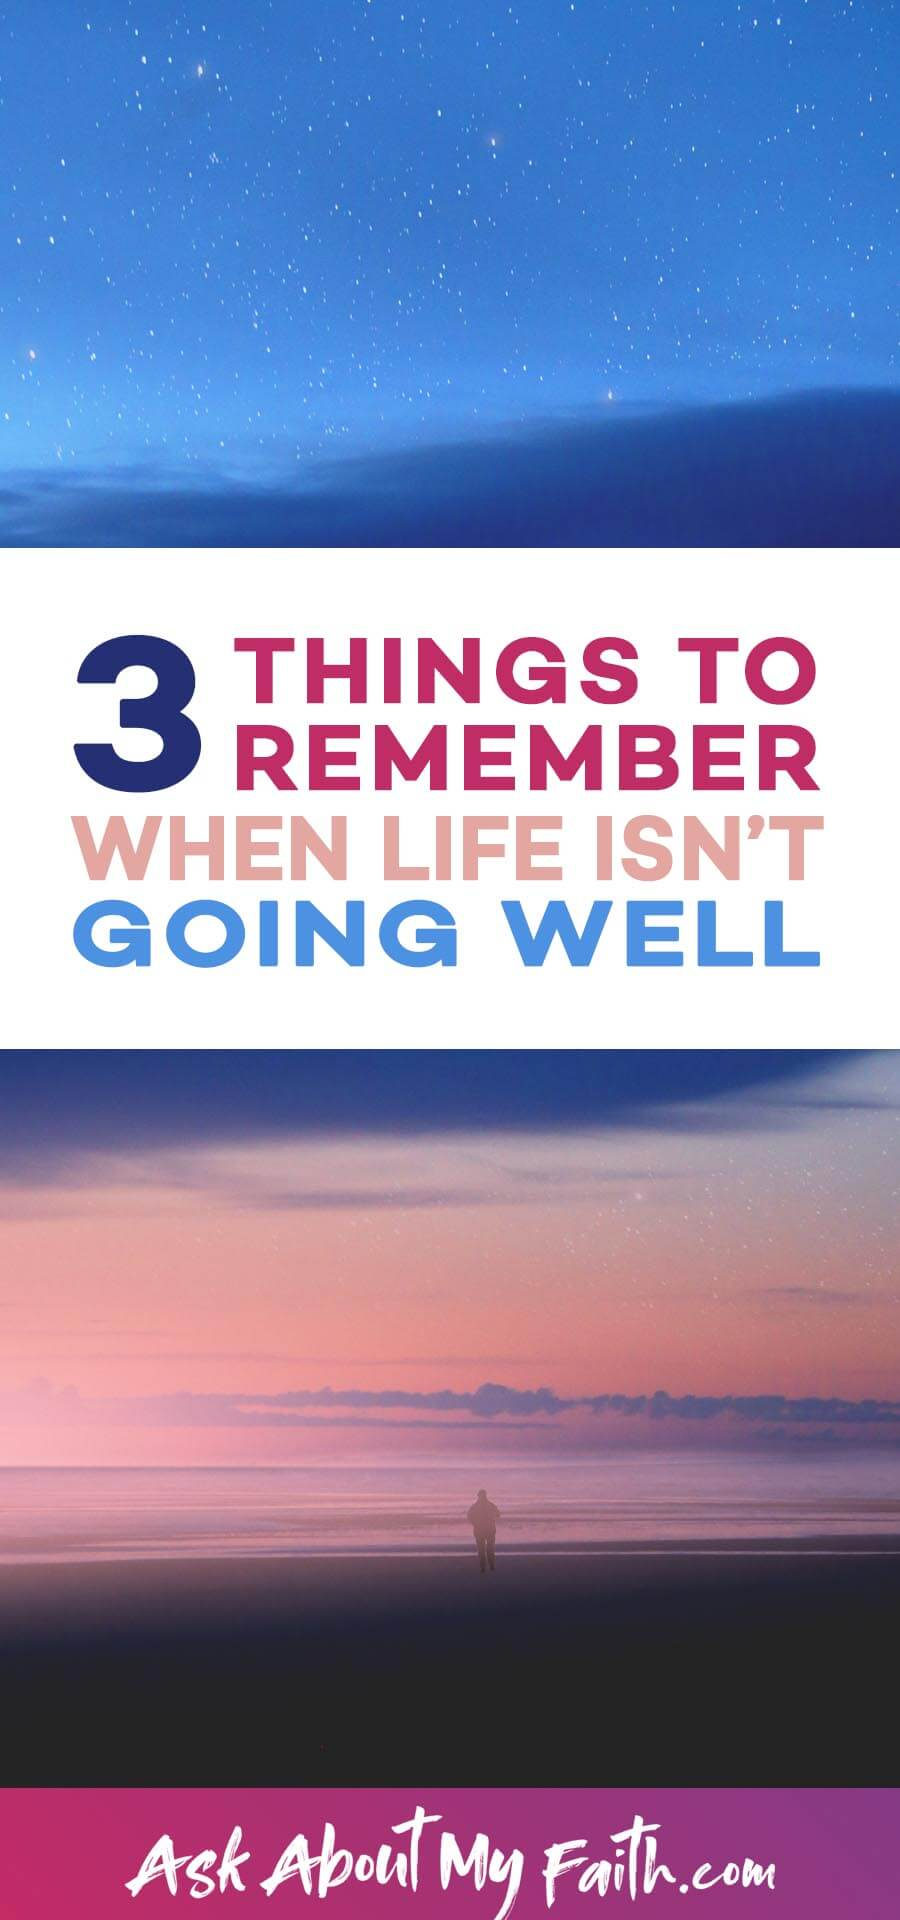 3 Things to Remember When Life Isn't Going Well | Trusting God | Faith Resources